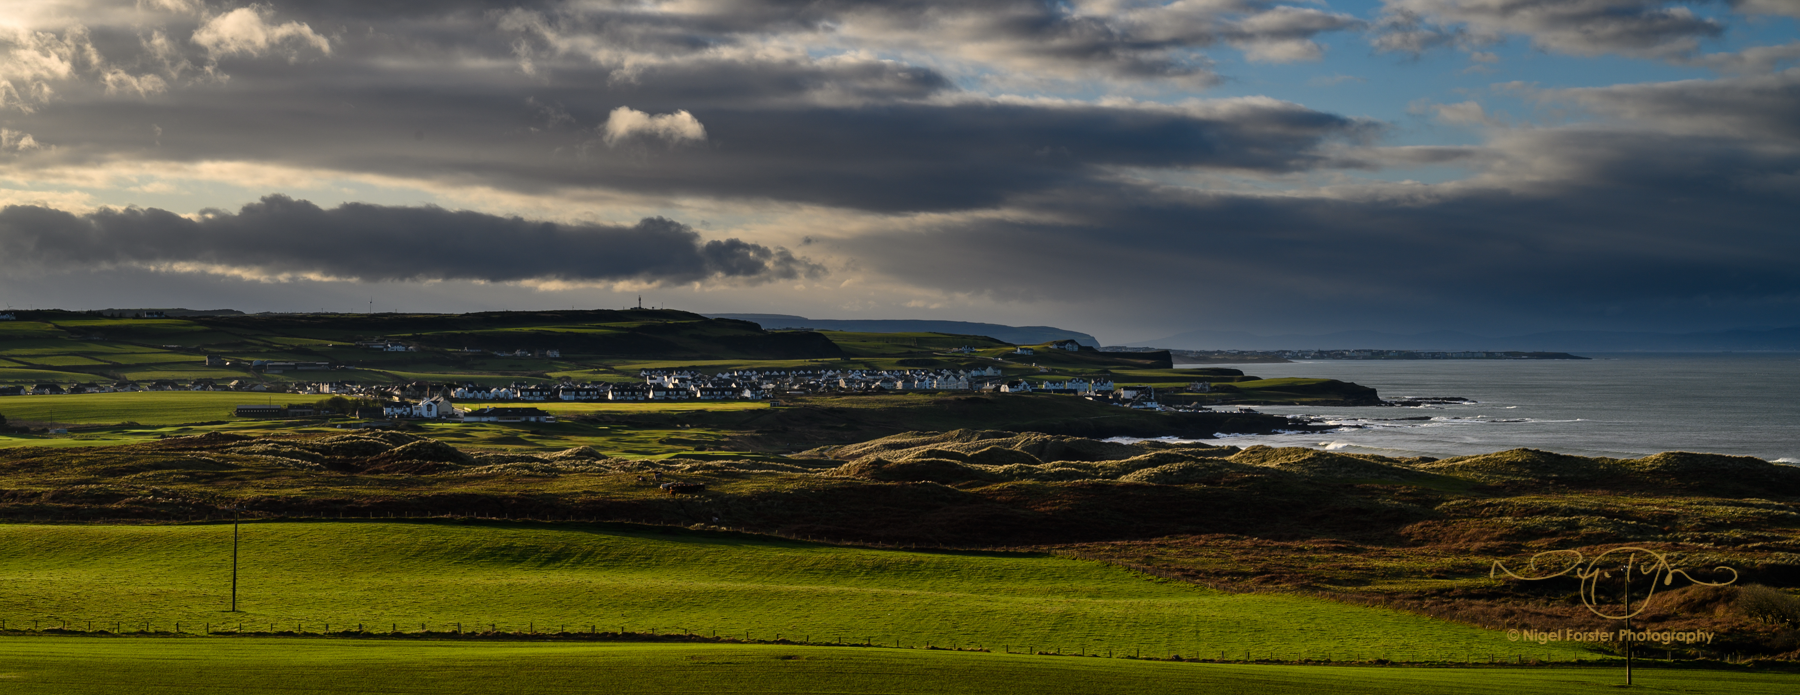 My very first shot, looking west from Giants Causeway towards Portrush (home of last years British Open Golf Championship)